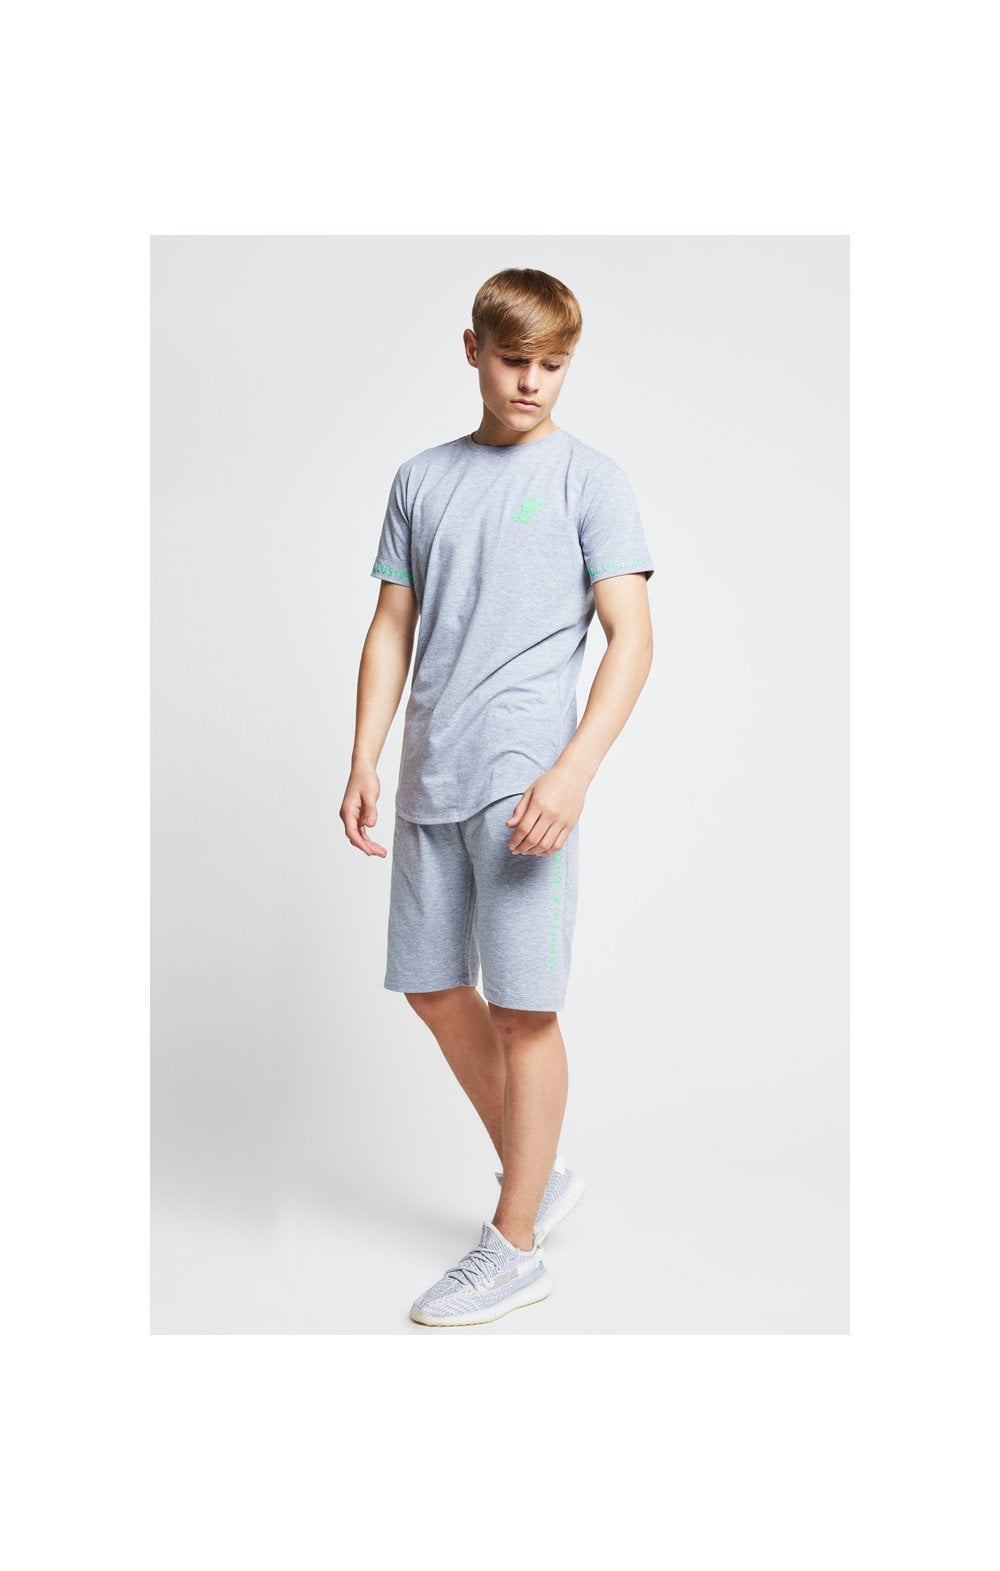 Load image into Gallery viewer, Illusive London Tape Jersey Shorts - Grey & Neon Green (3)